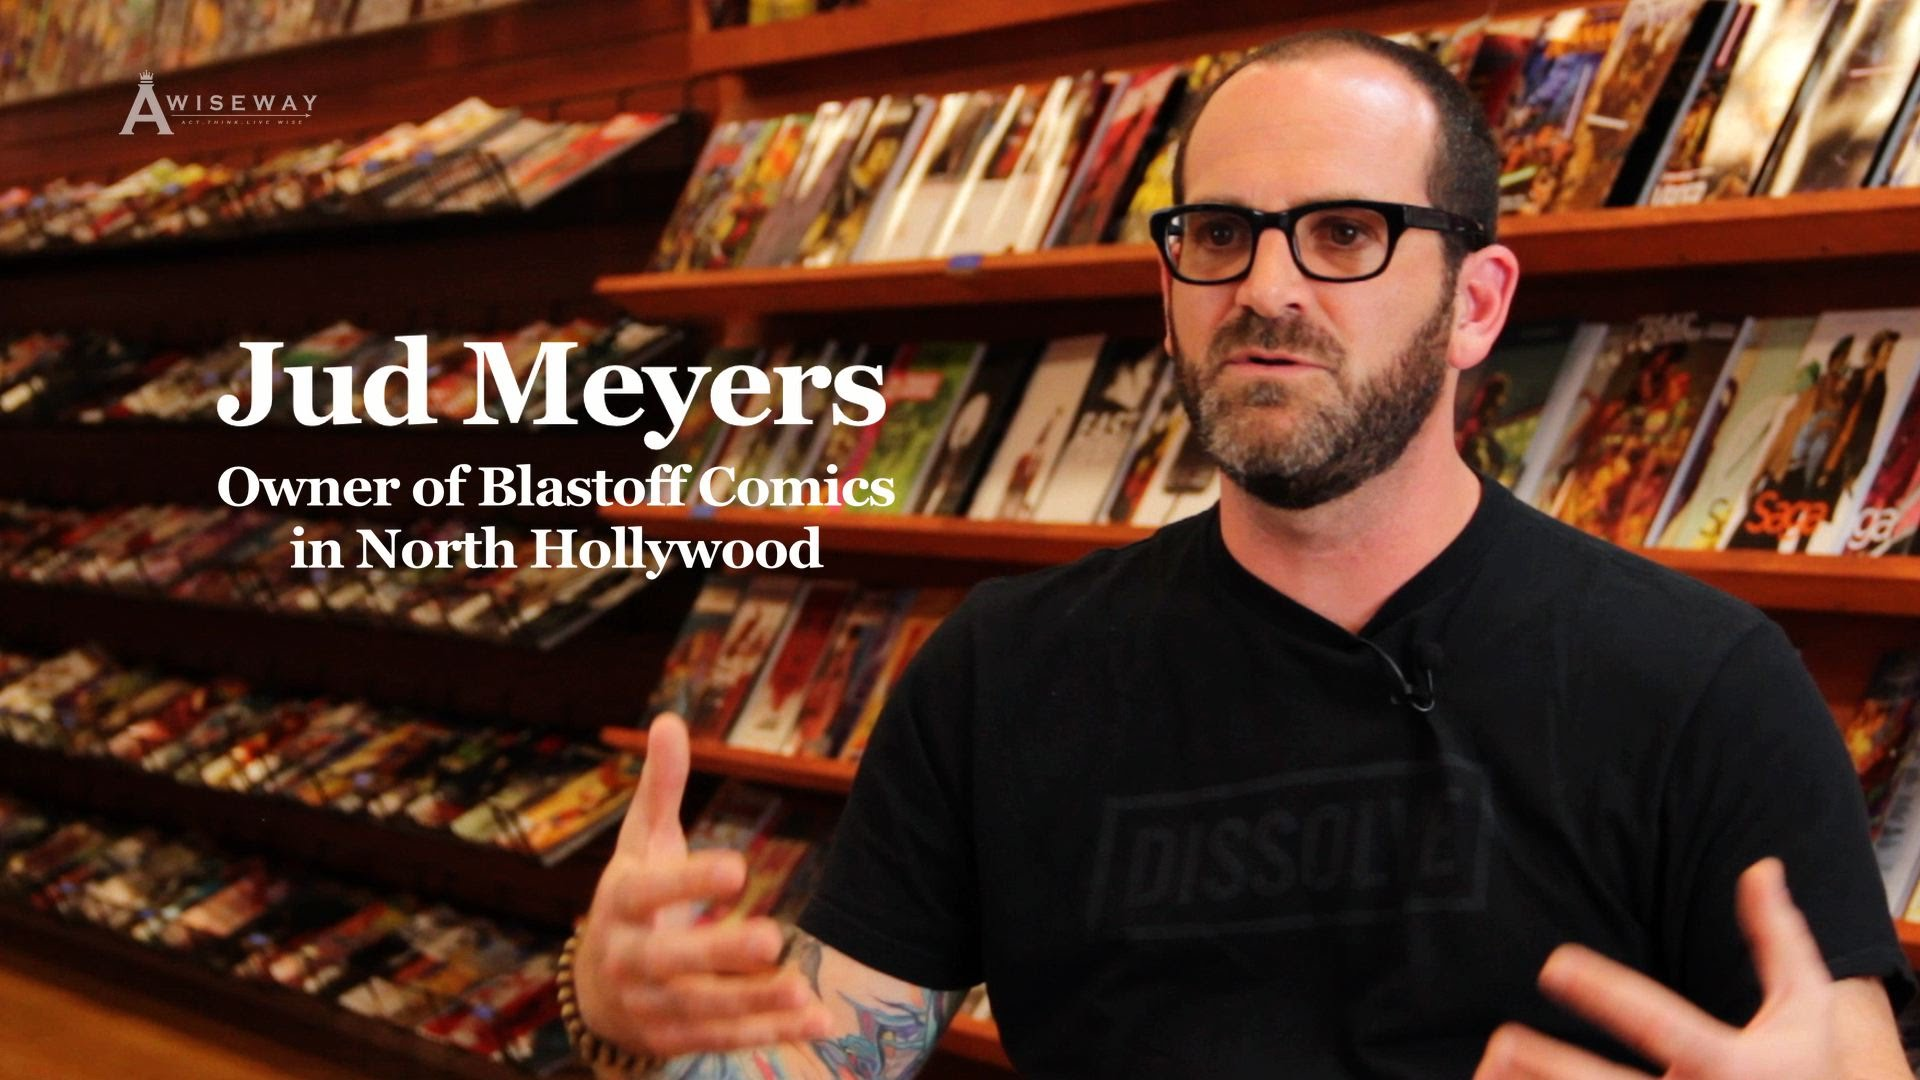 Blastoff Comics Owner, Jud Meyers Explains Choice on Superman vs Batman